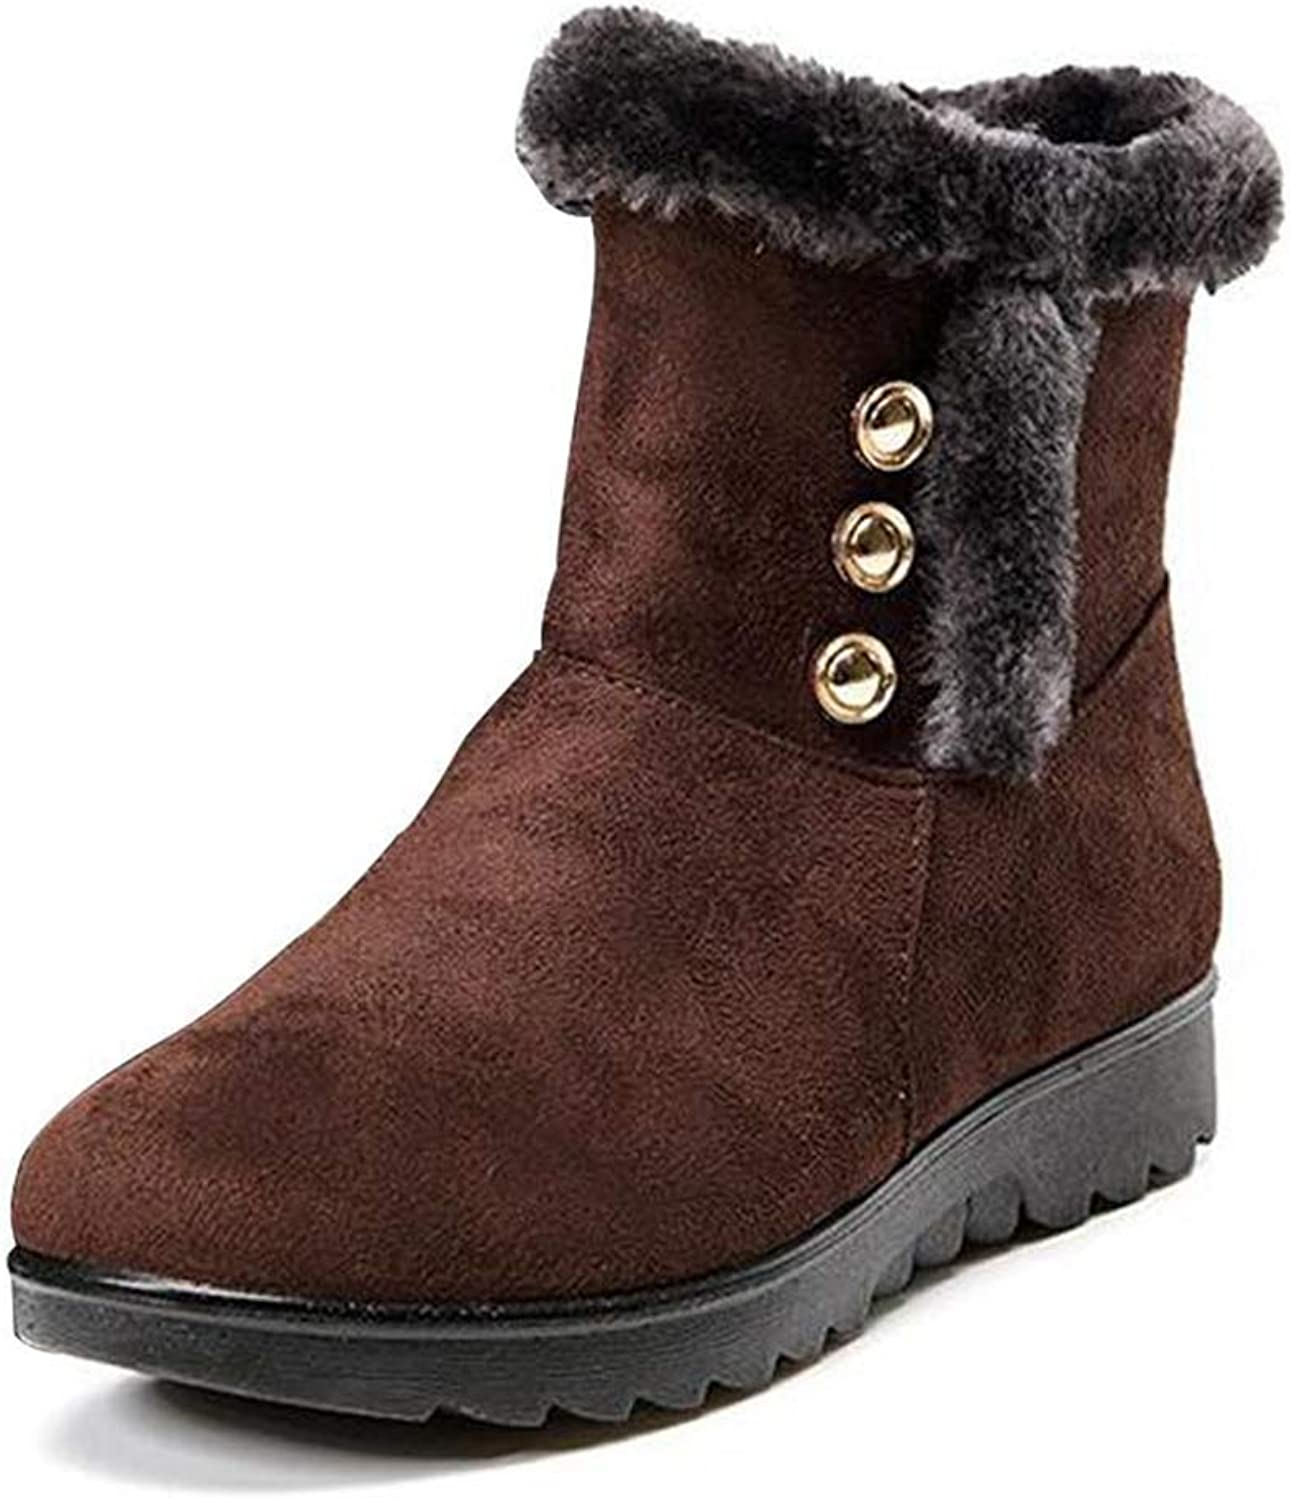 T-JULY Winter Boots Women's Flat Comfortable Ankle Boots Waterproof Non-Slip Button Elderly Casual Warm Soft Snow Boots